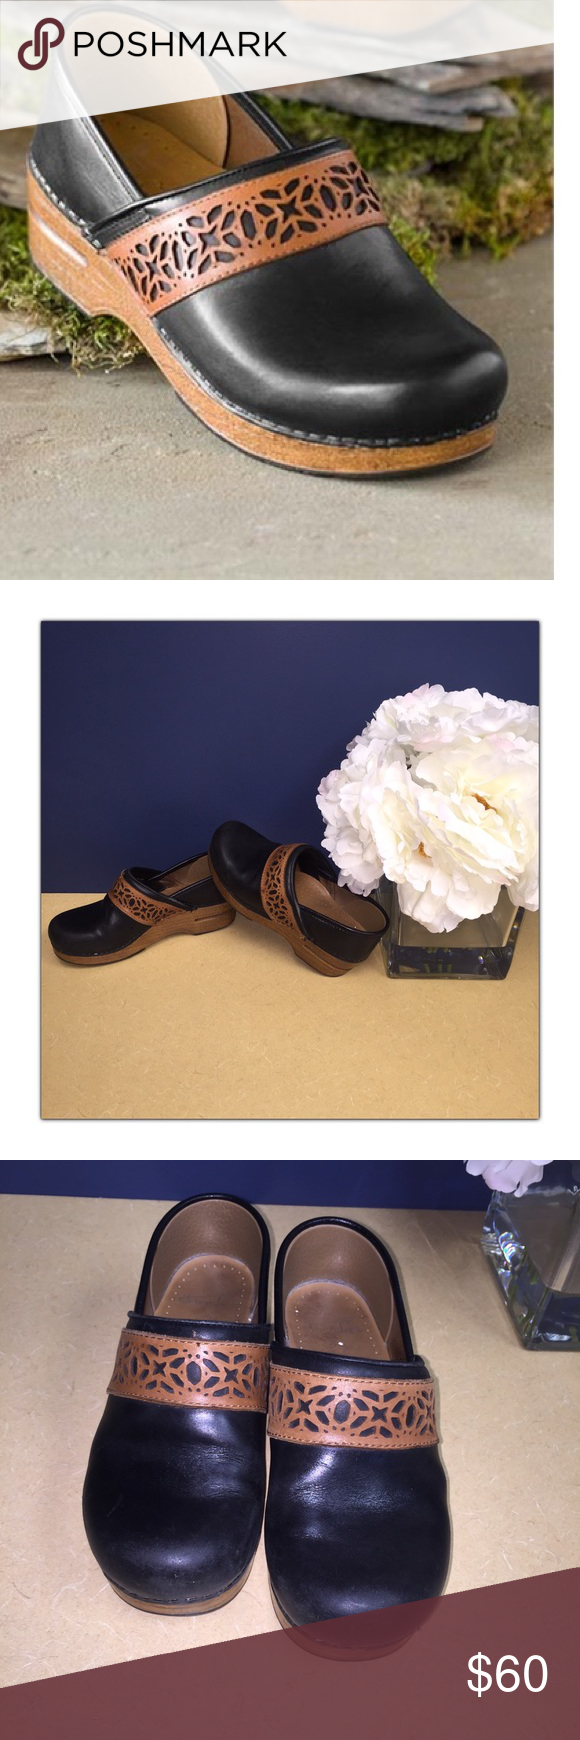 30992cdbd7 Dansko Pavan Clogs Super cute in great used condition no damages to the clog  or stitching